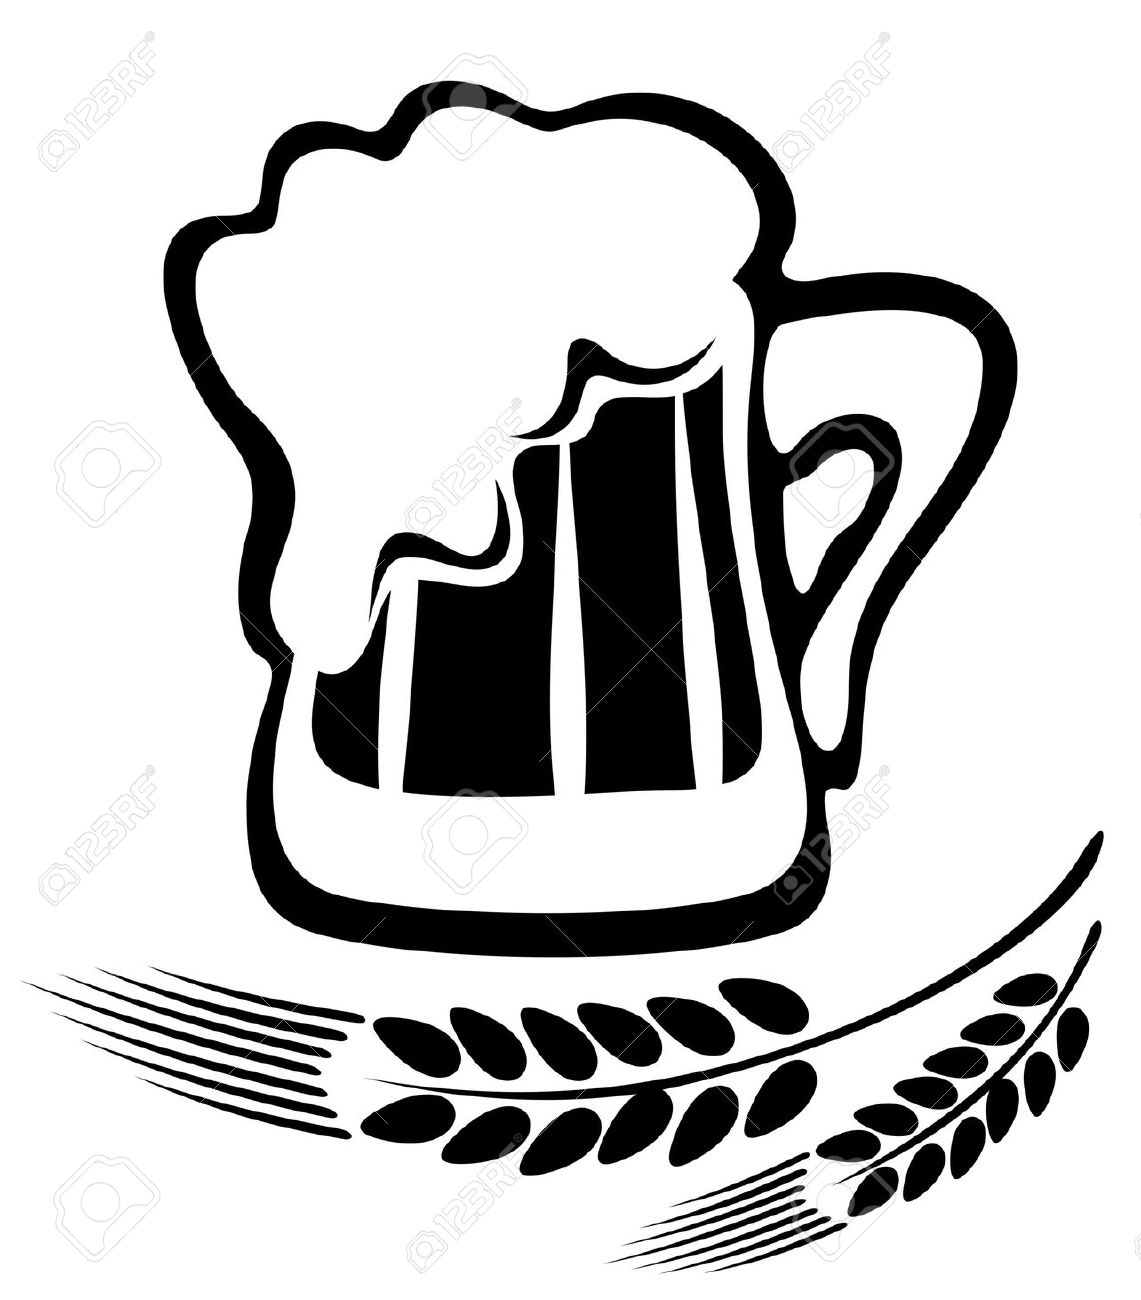 Beer clipart sketch. Pint of drawing at